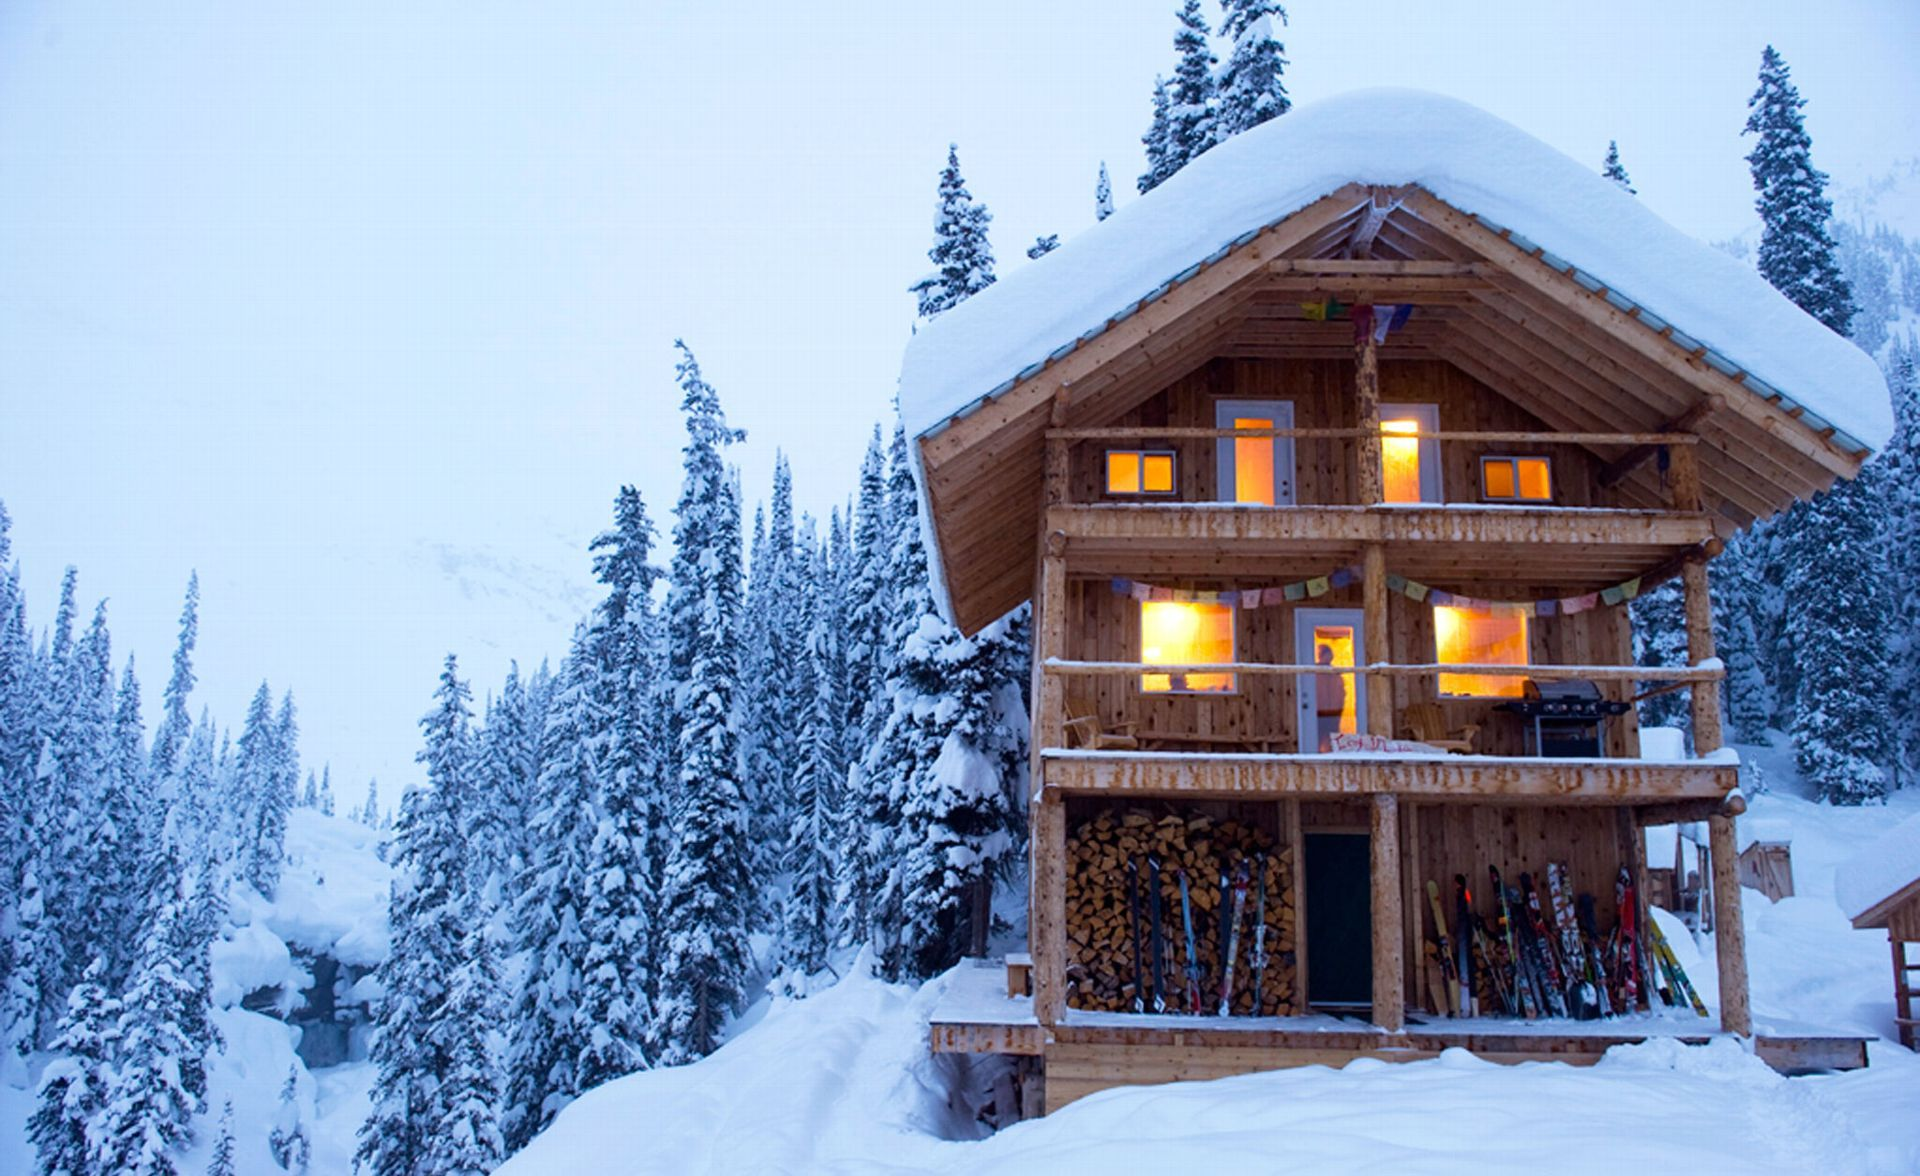 Best Backcountry Huts: Icefall Lodge, British Columbia